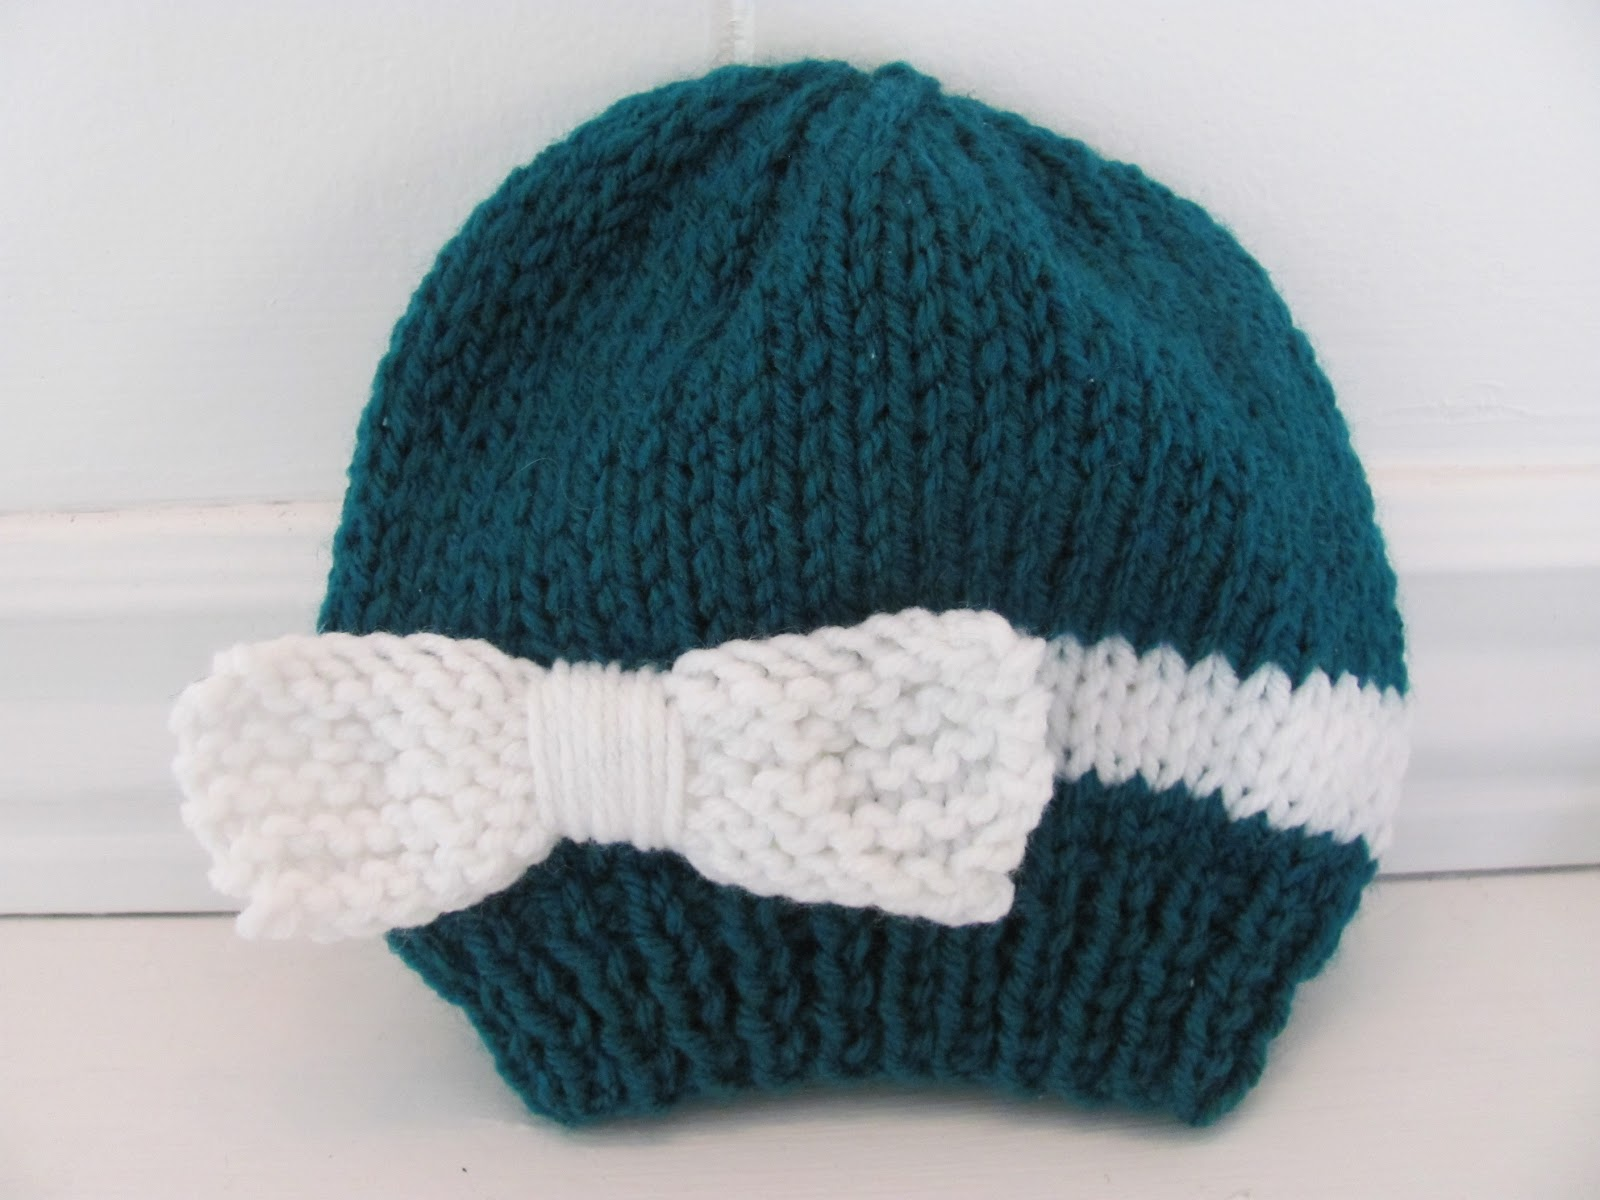 Baby Knitted Hat Patterns On Circular Needles : Twenty Something Granny: Knitted Baby Bow Hat